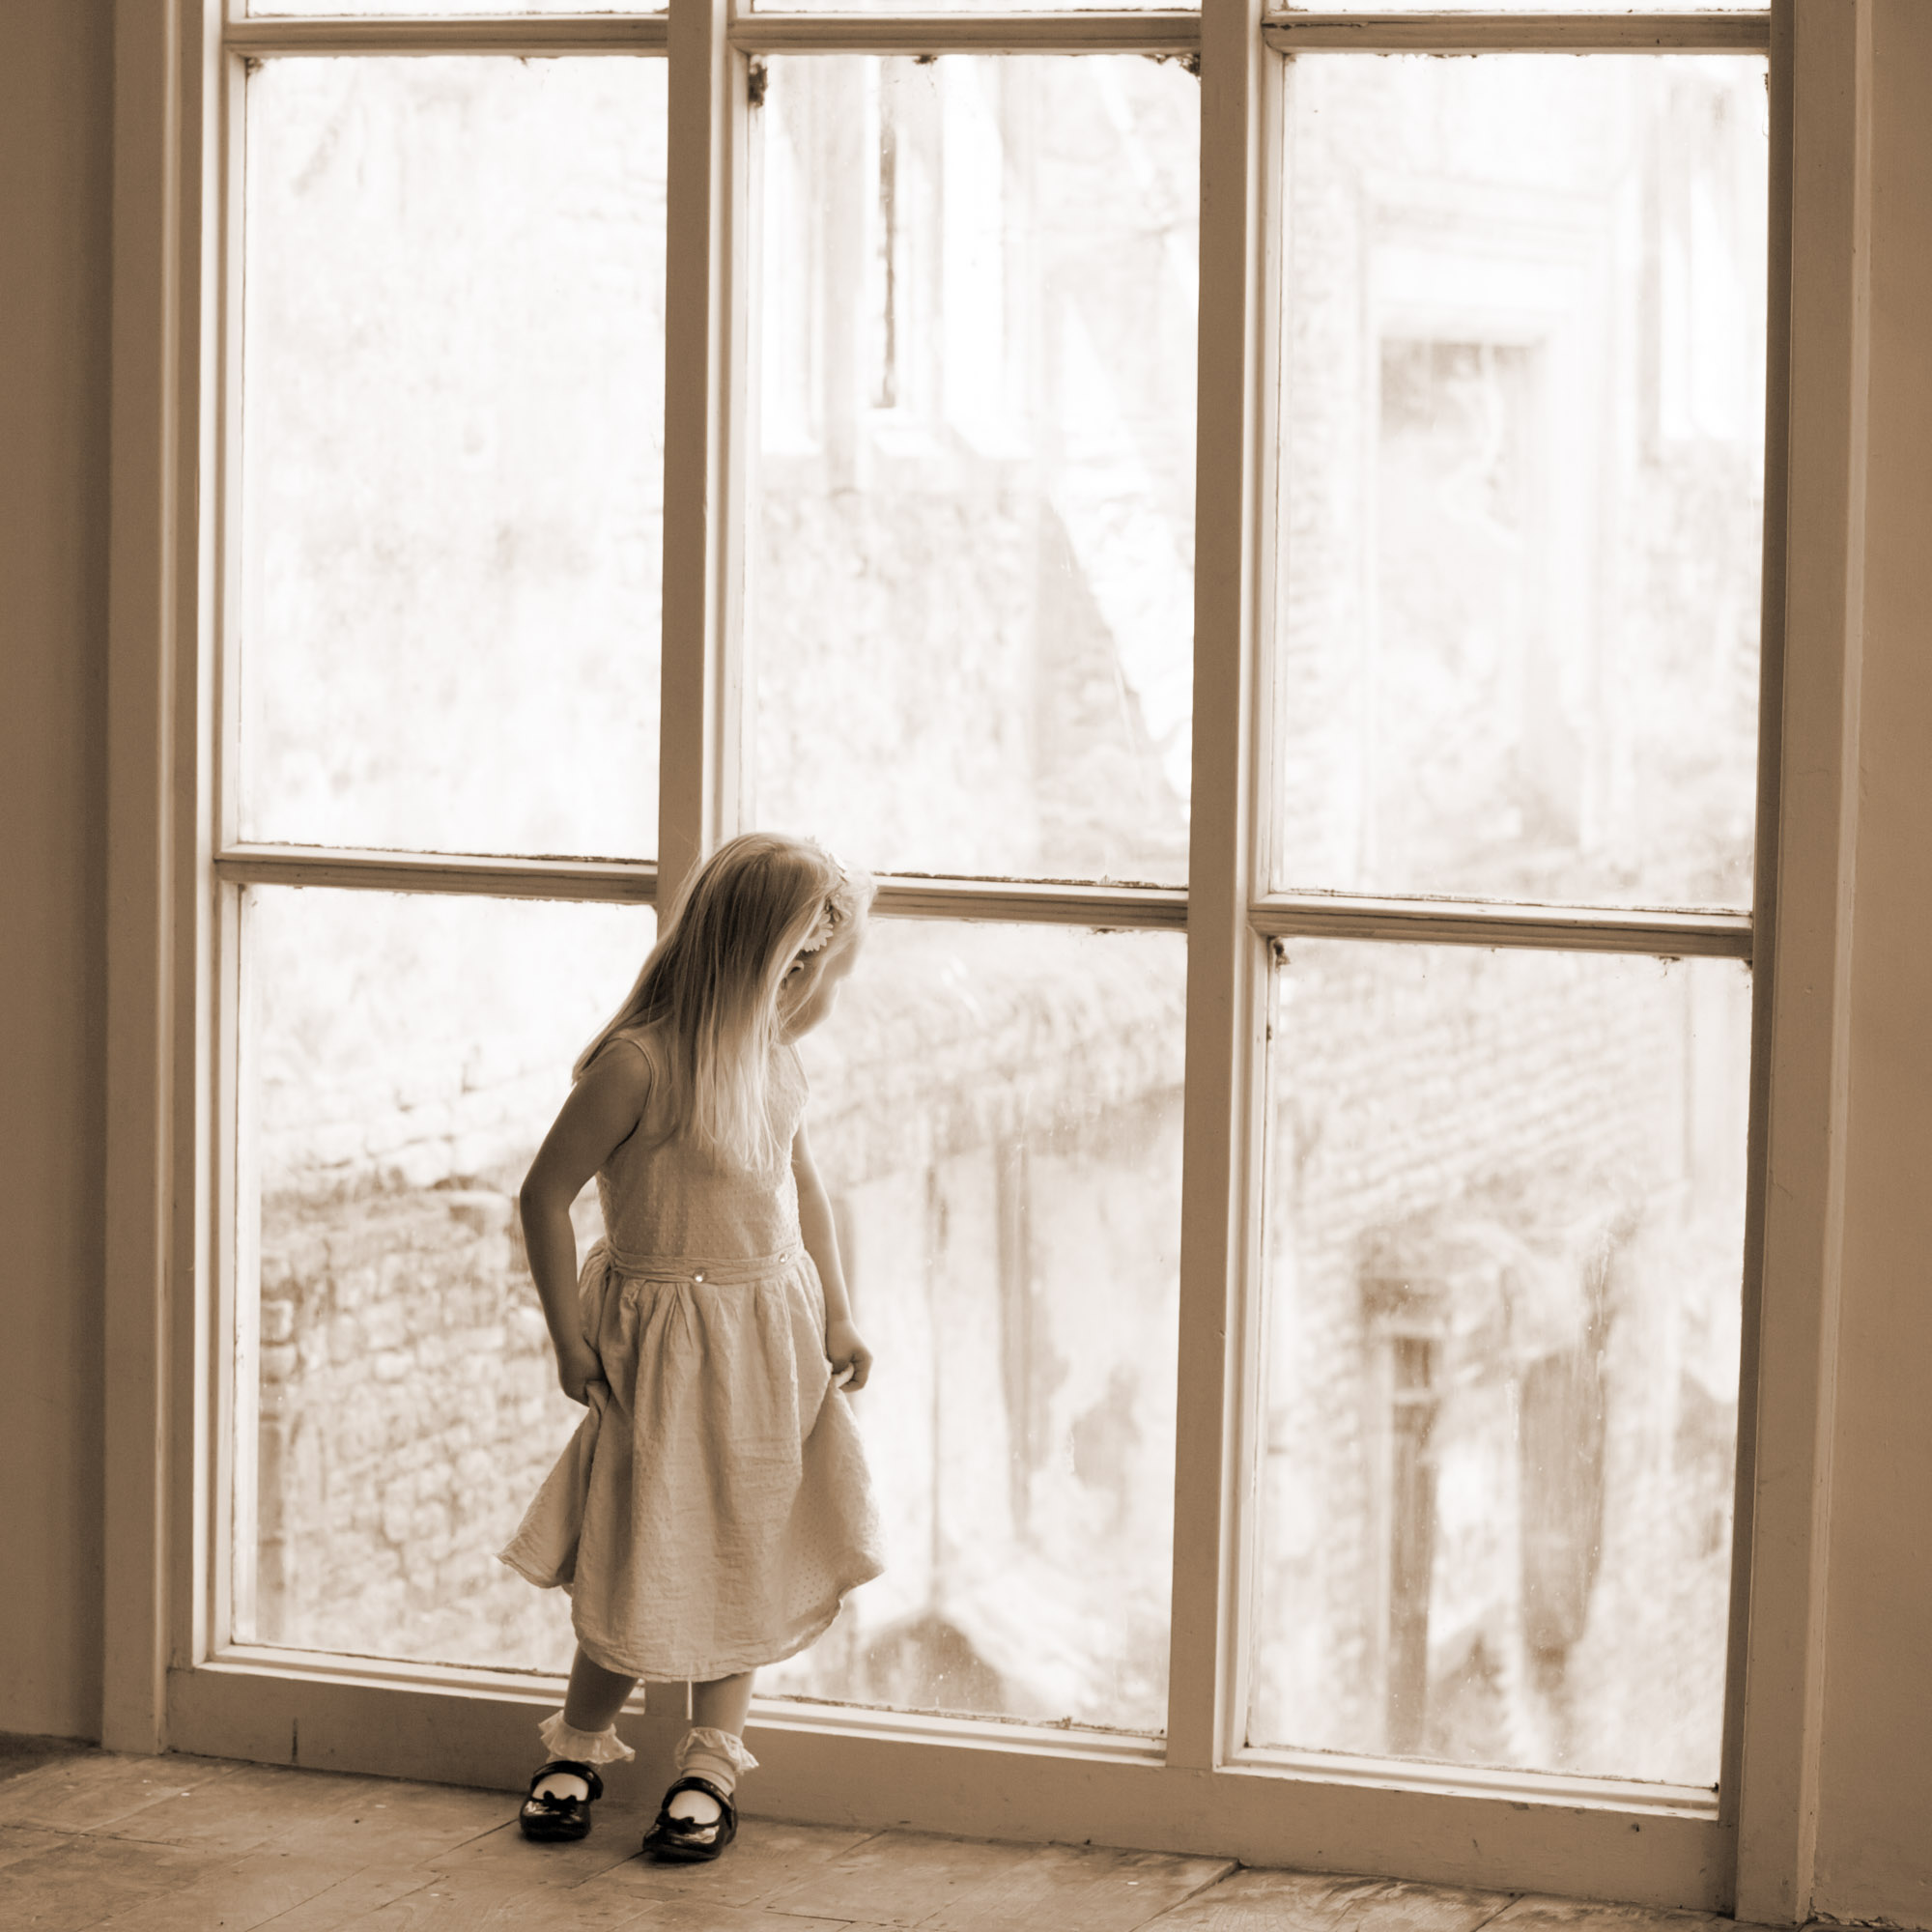 Little girl looking out of a large window